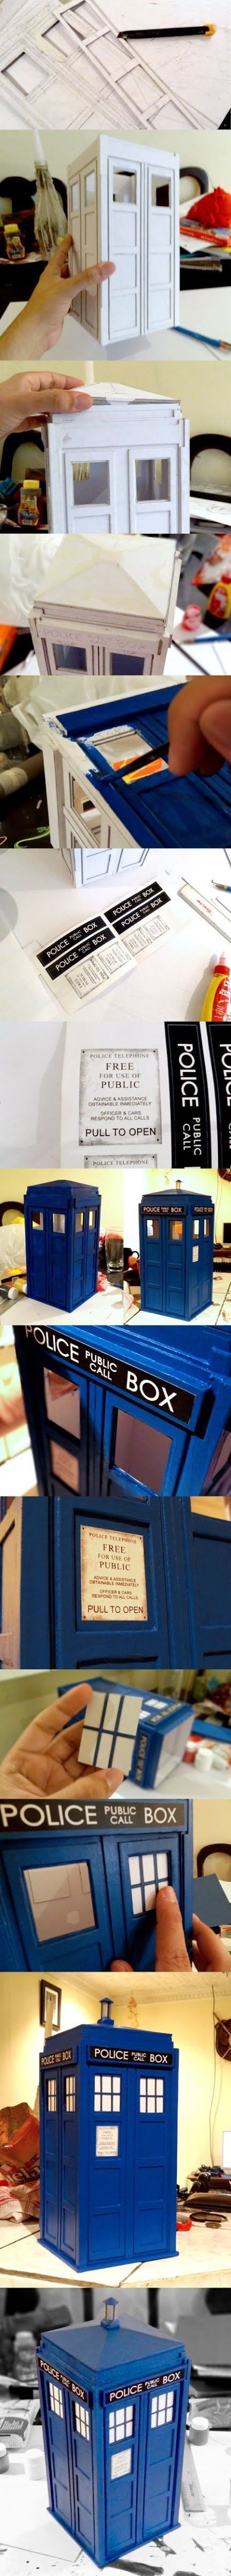 best dr who images on pinterest doctor who decor the doctor